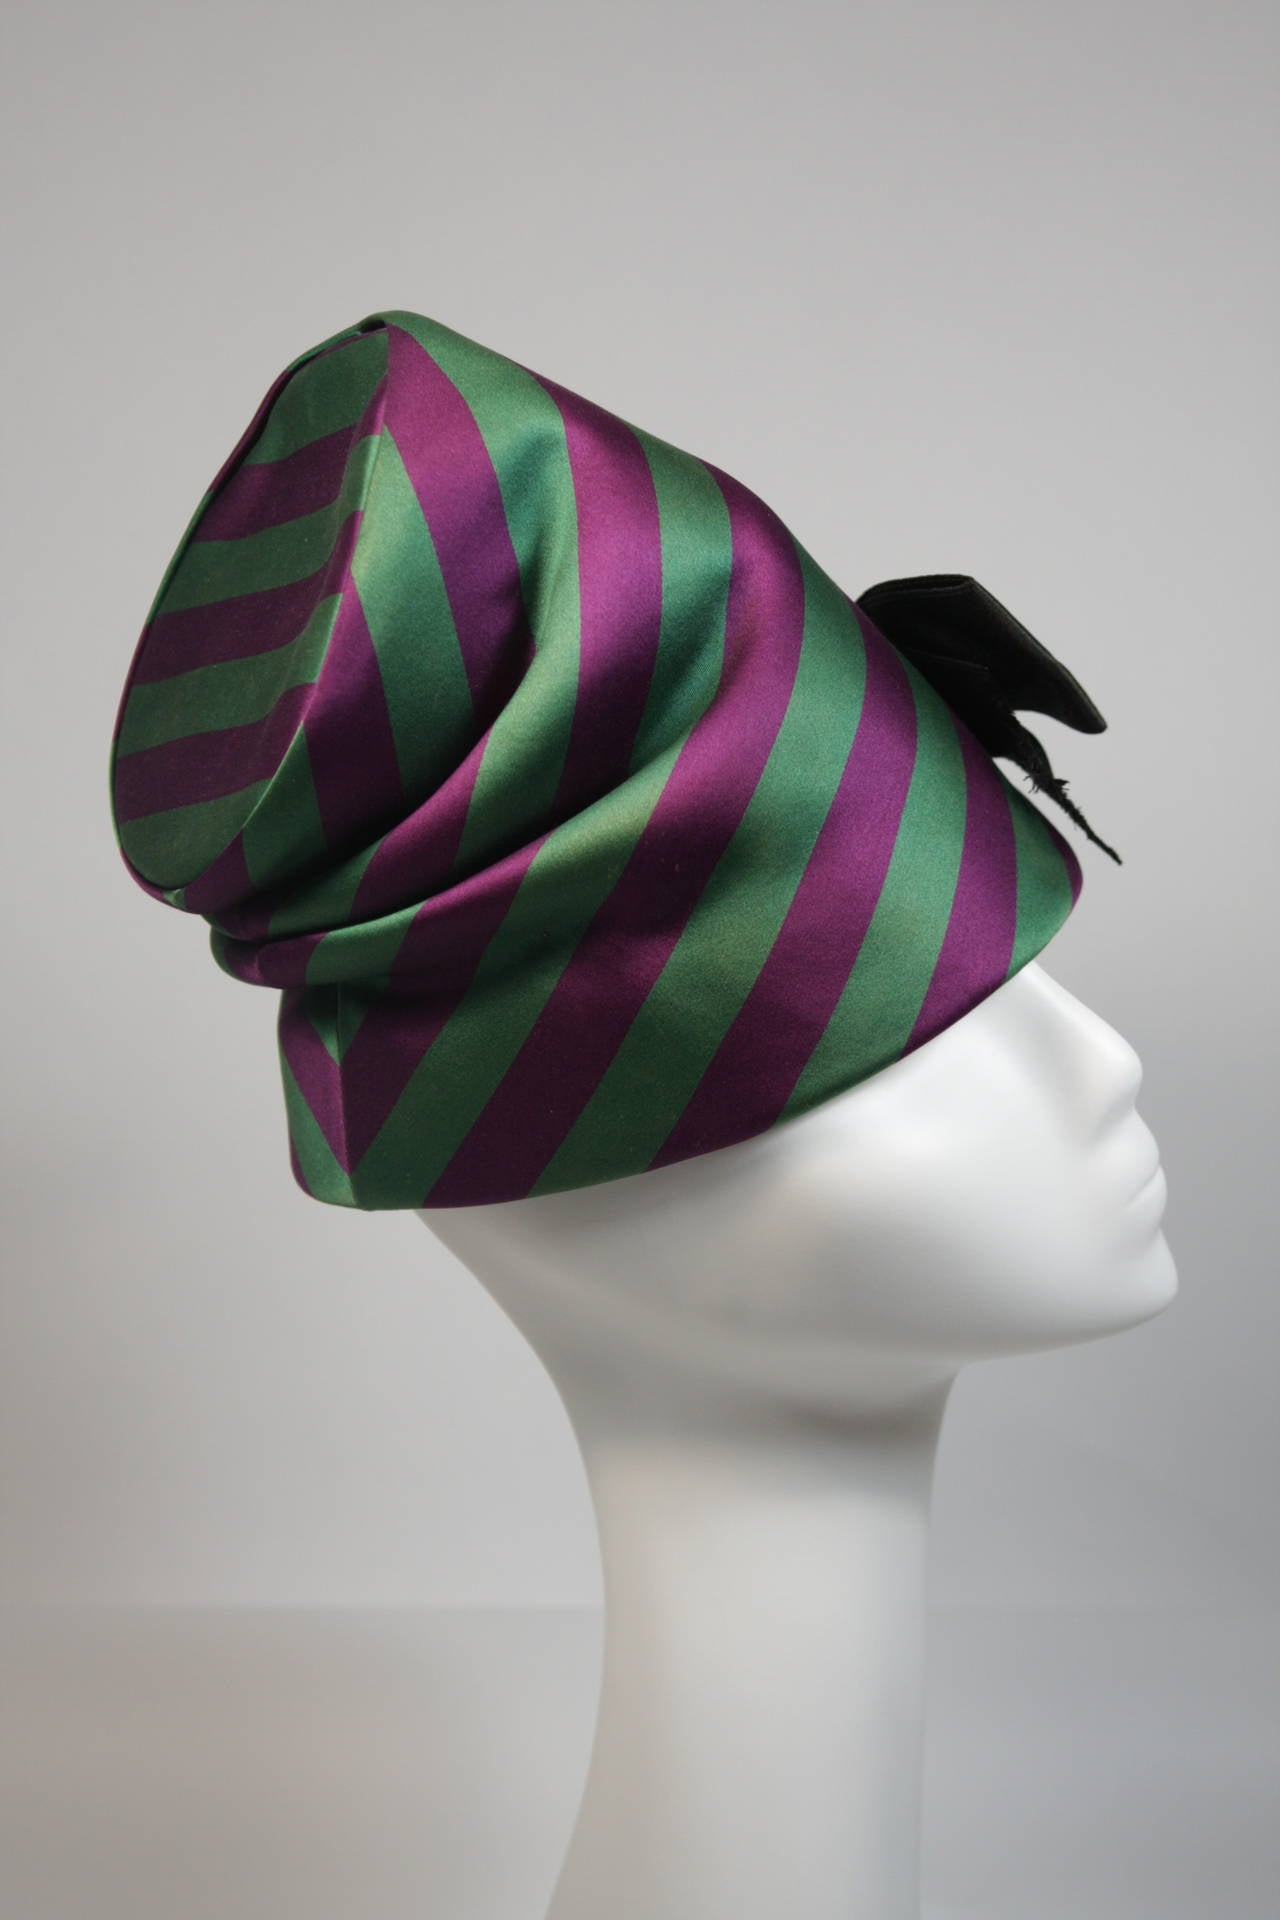 Yves Saint Laurent Rive Gauche Purple and Green Silk Rouched Hat with Bow 7